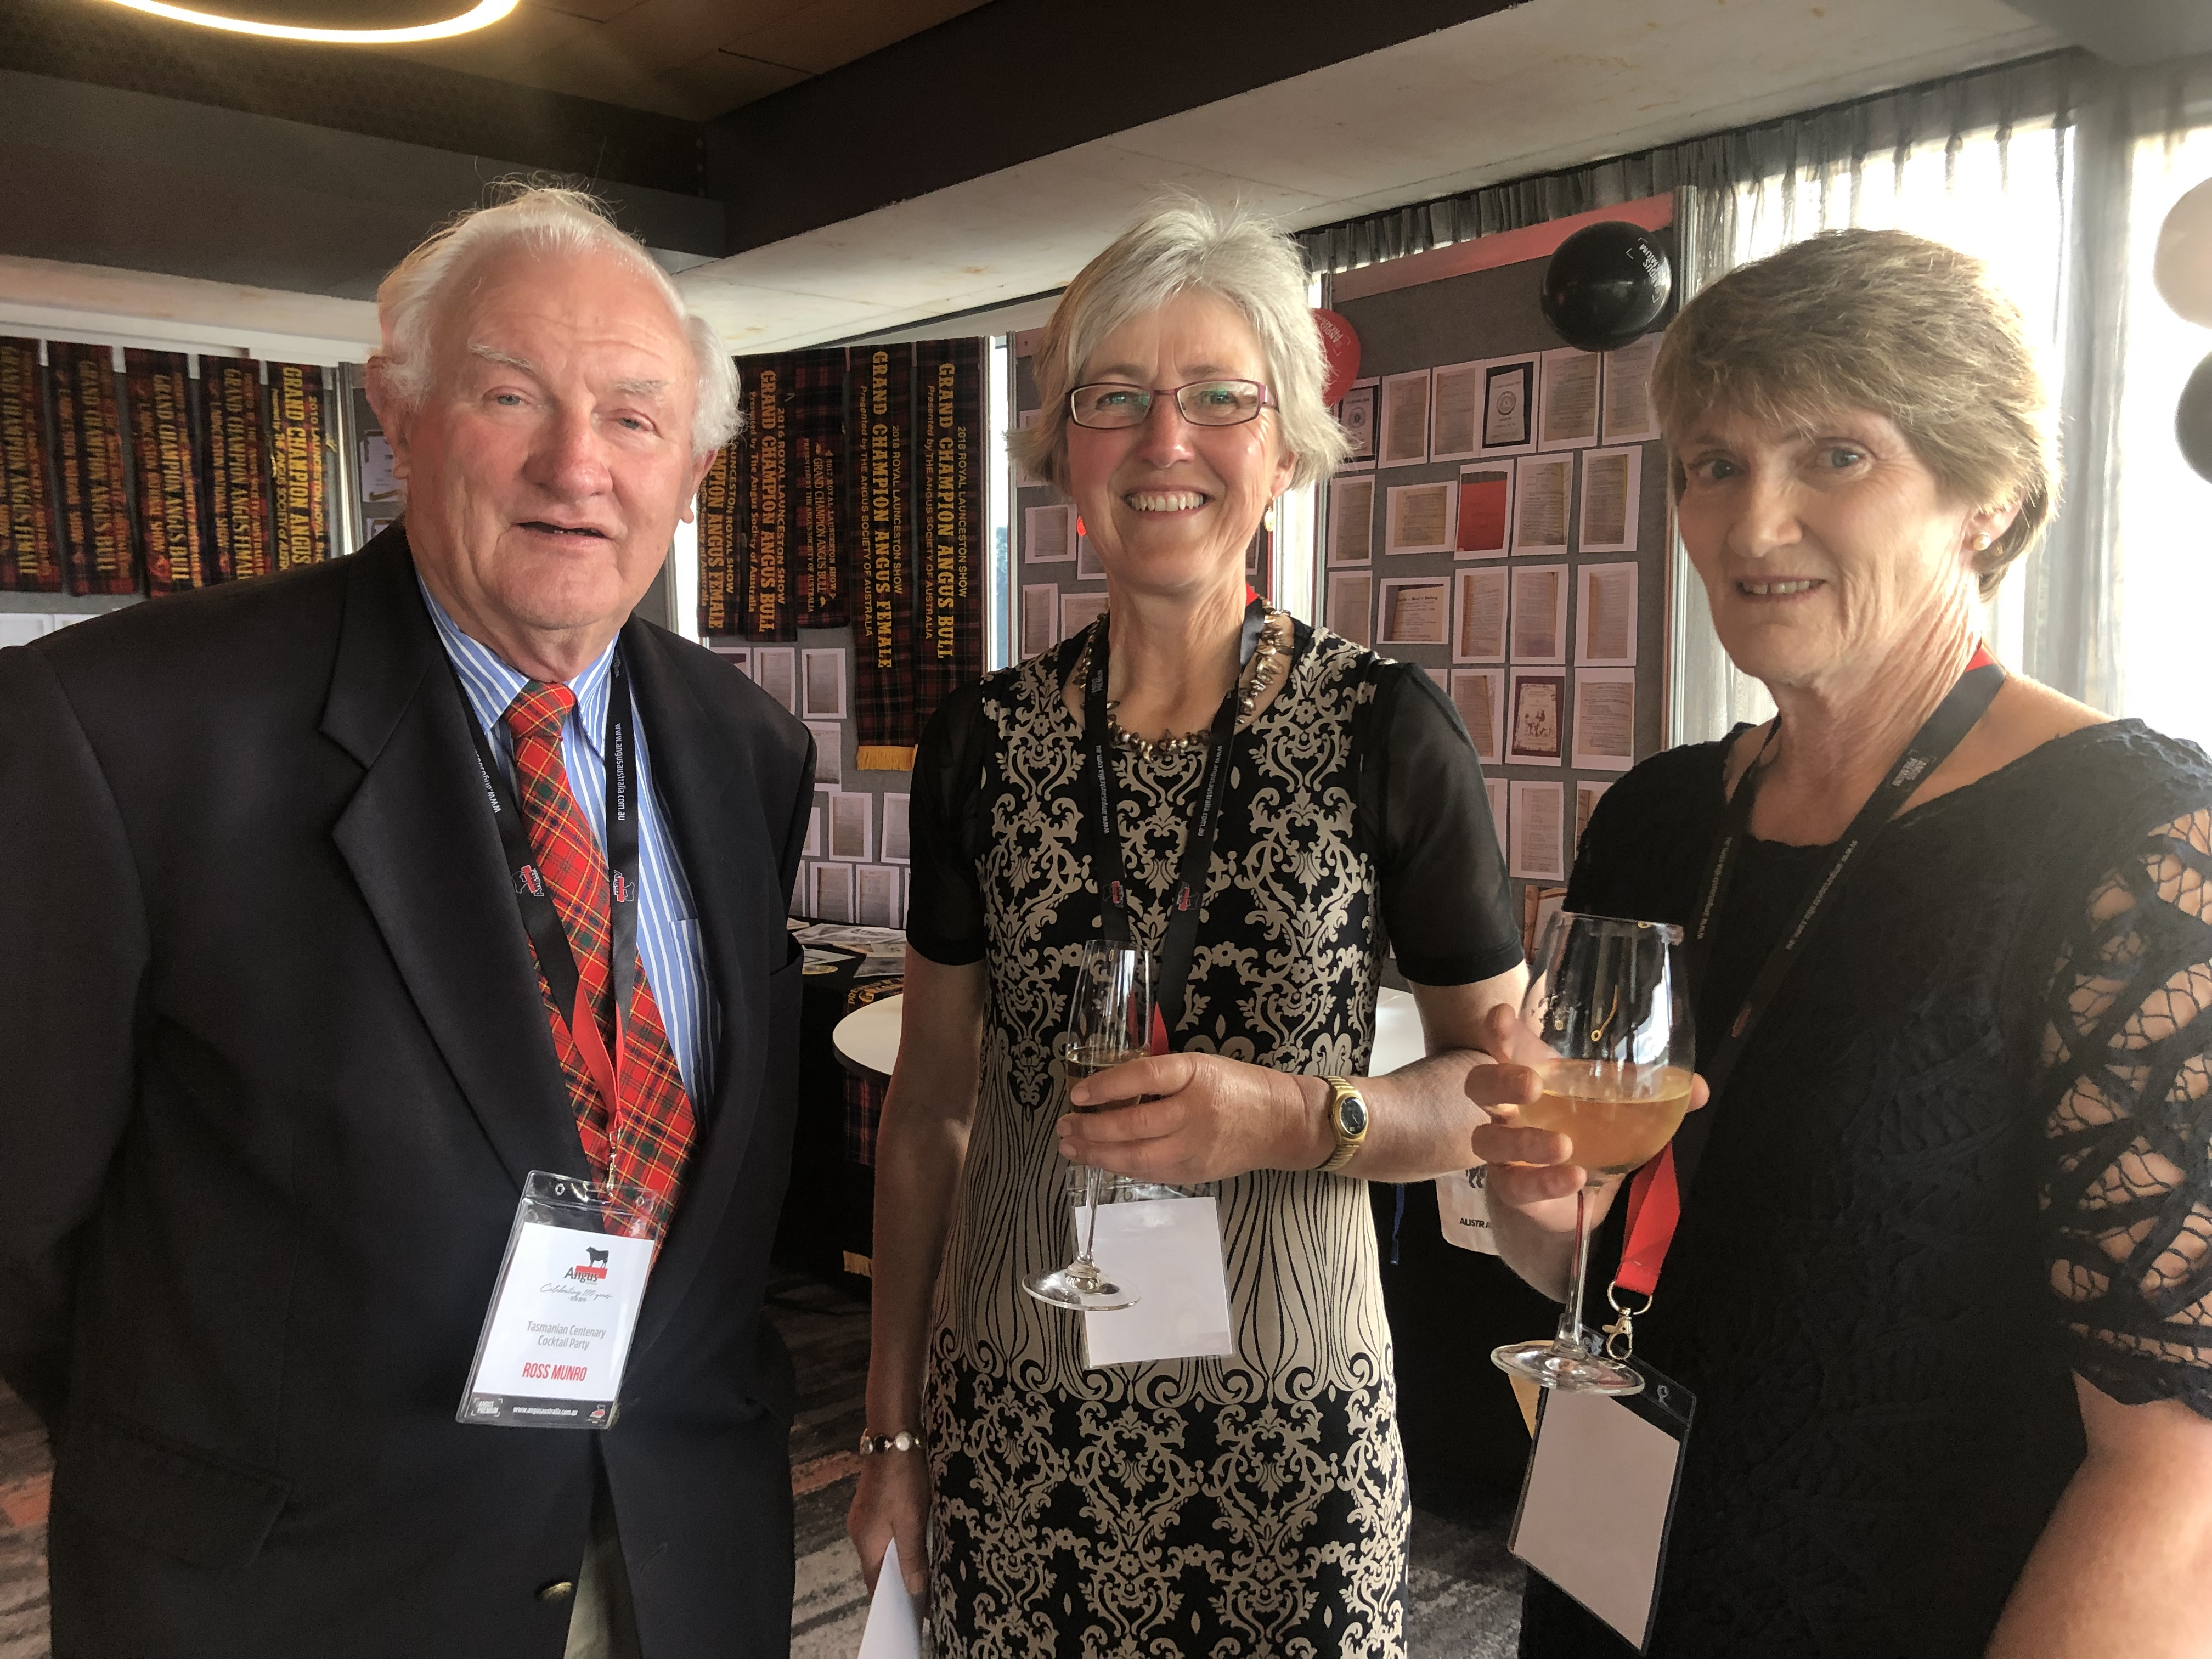 Ross Munro, Josie Beveridge and Robyn Hall at the Tasmanian Centenary Function